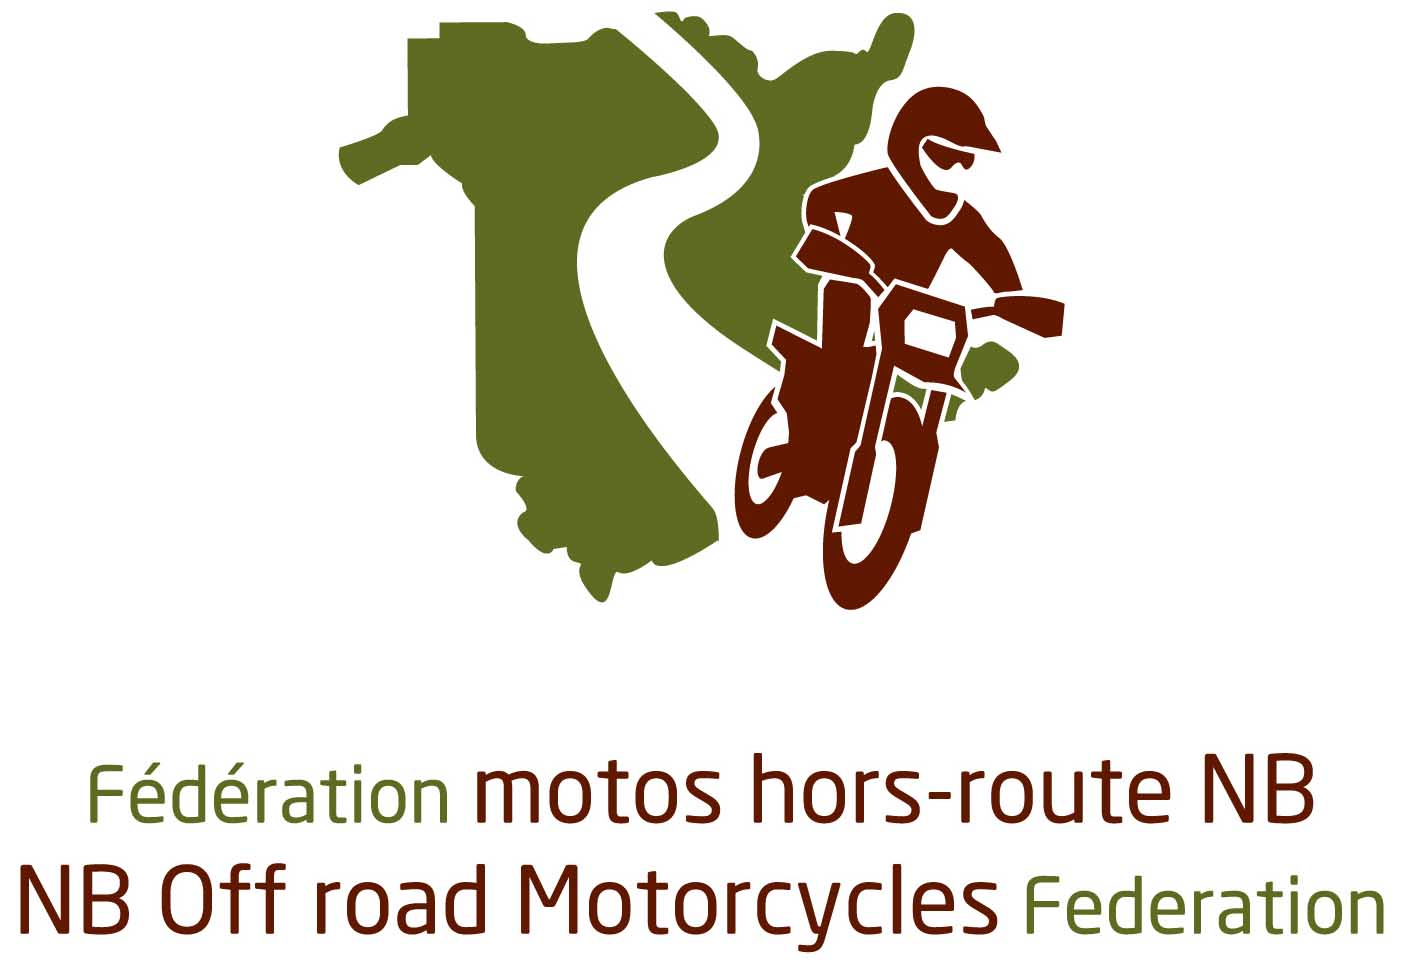 NB Off road Motorcycles Federation